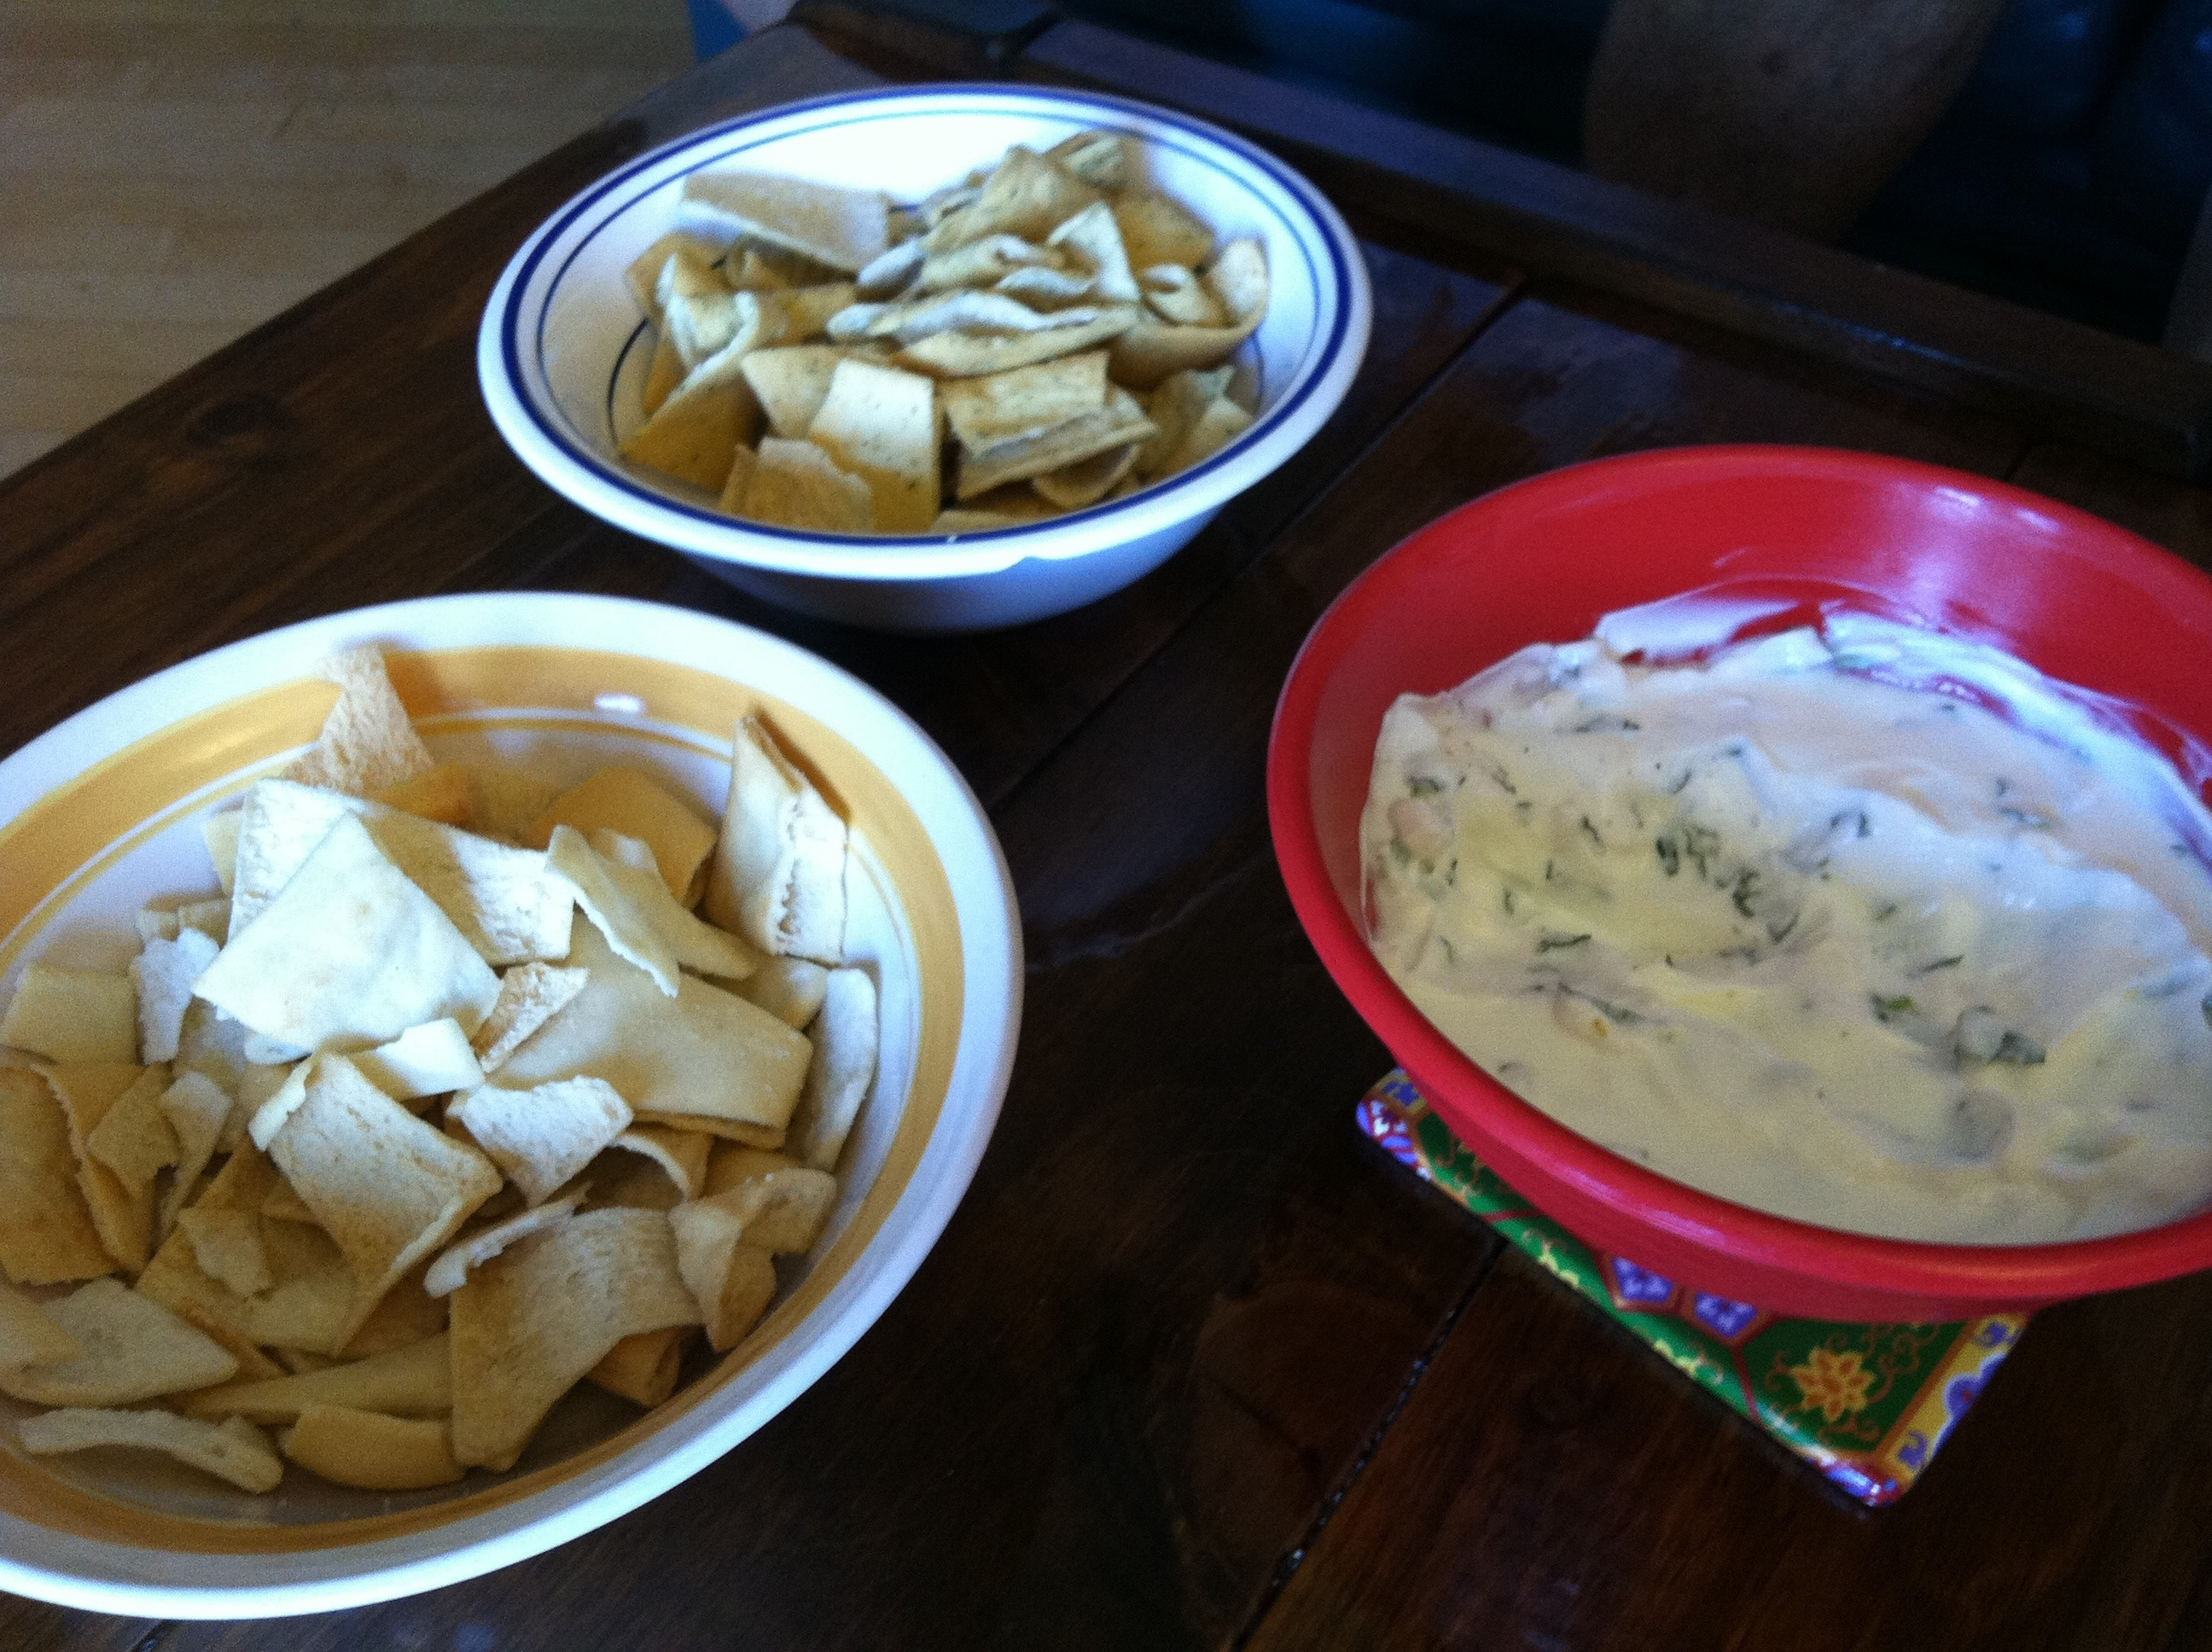 Pita chips with Greek yogurt dip